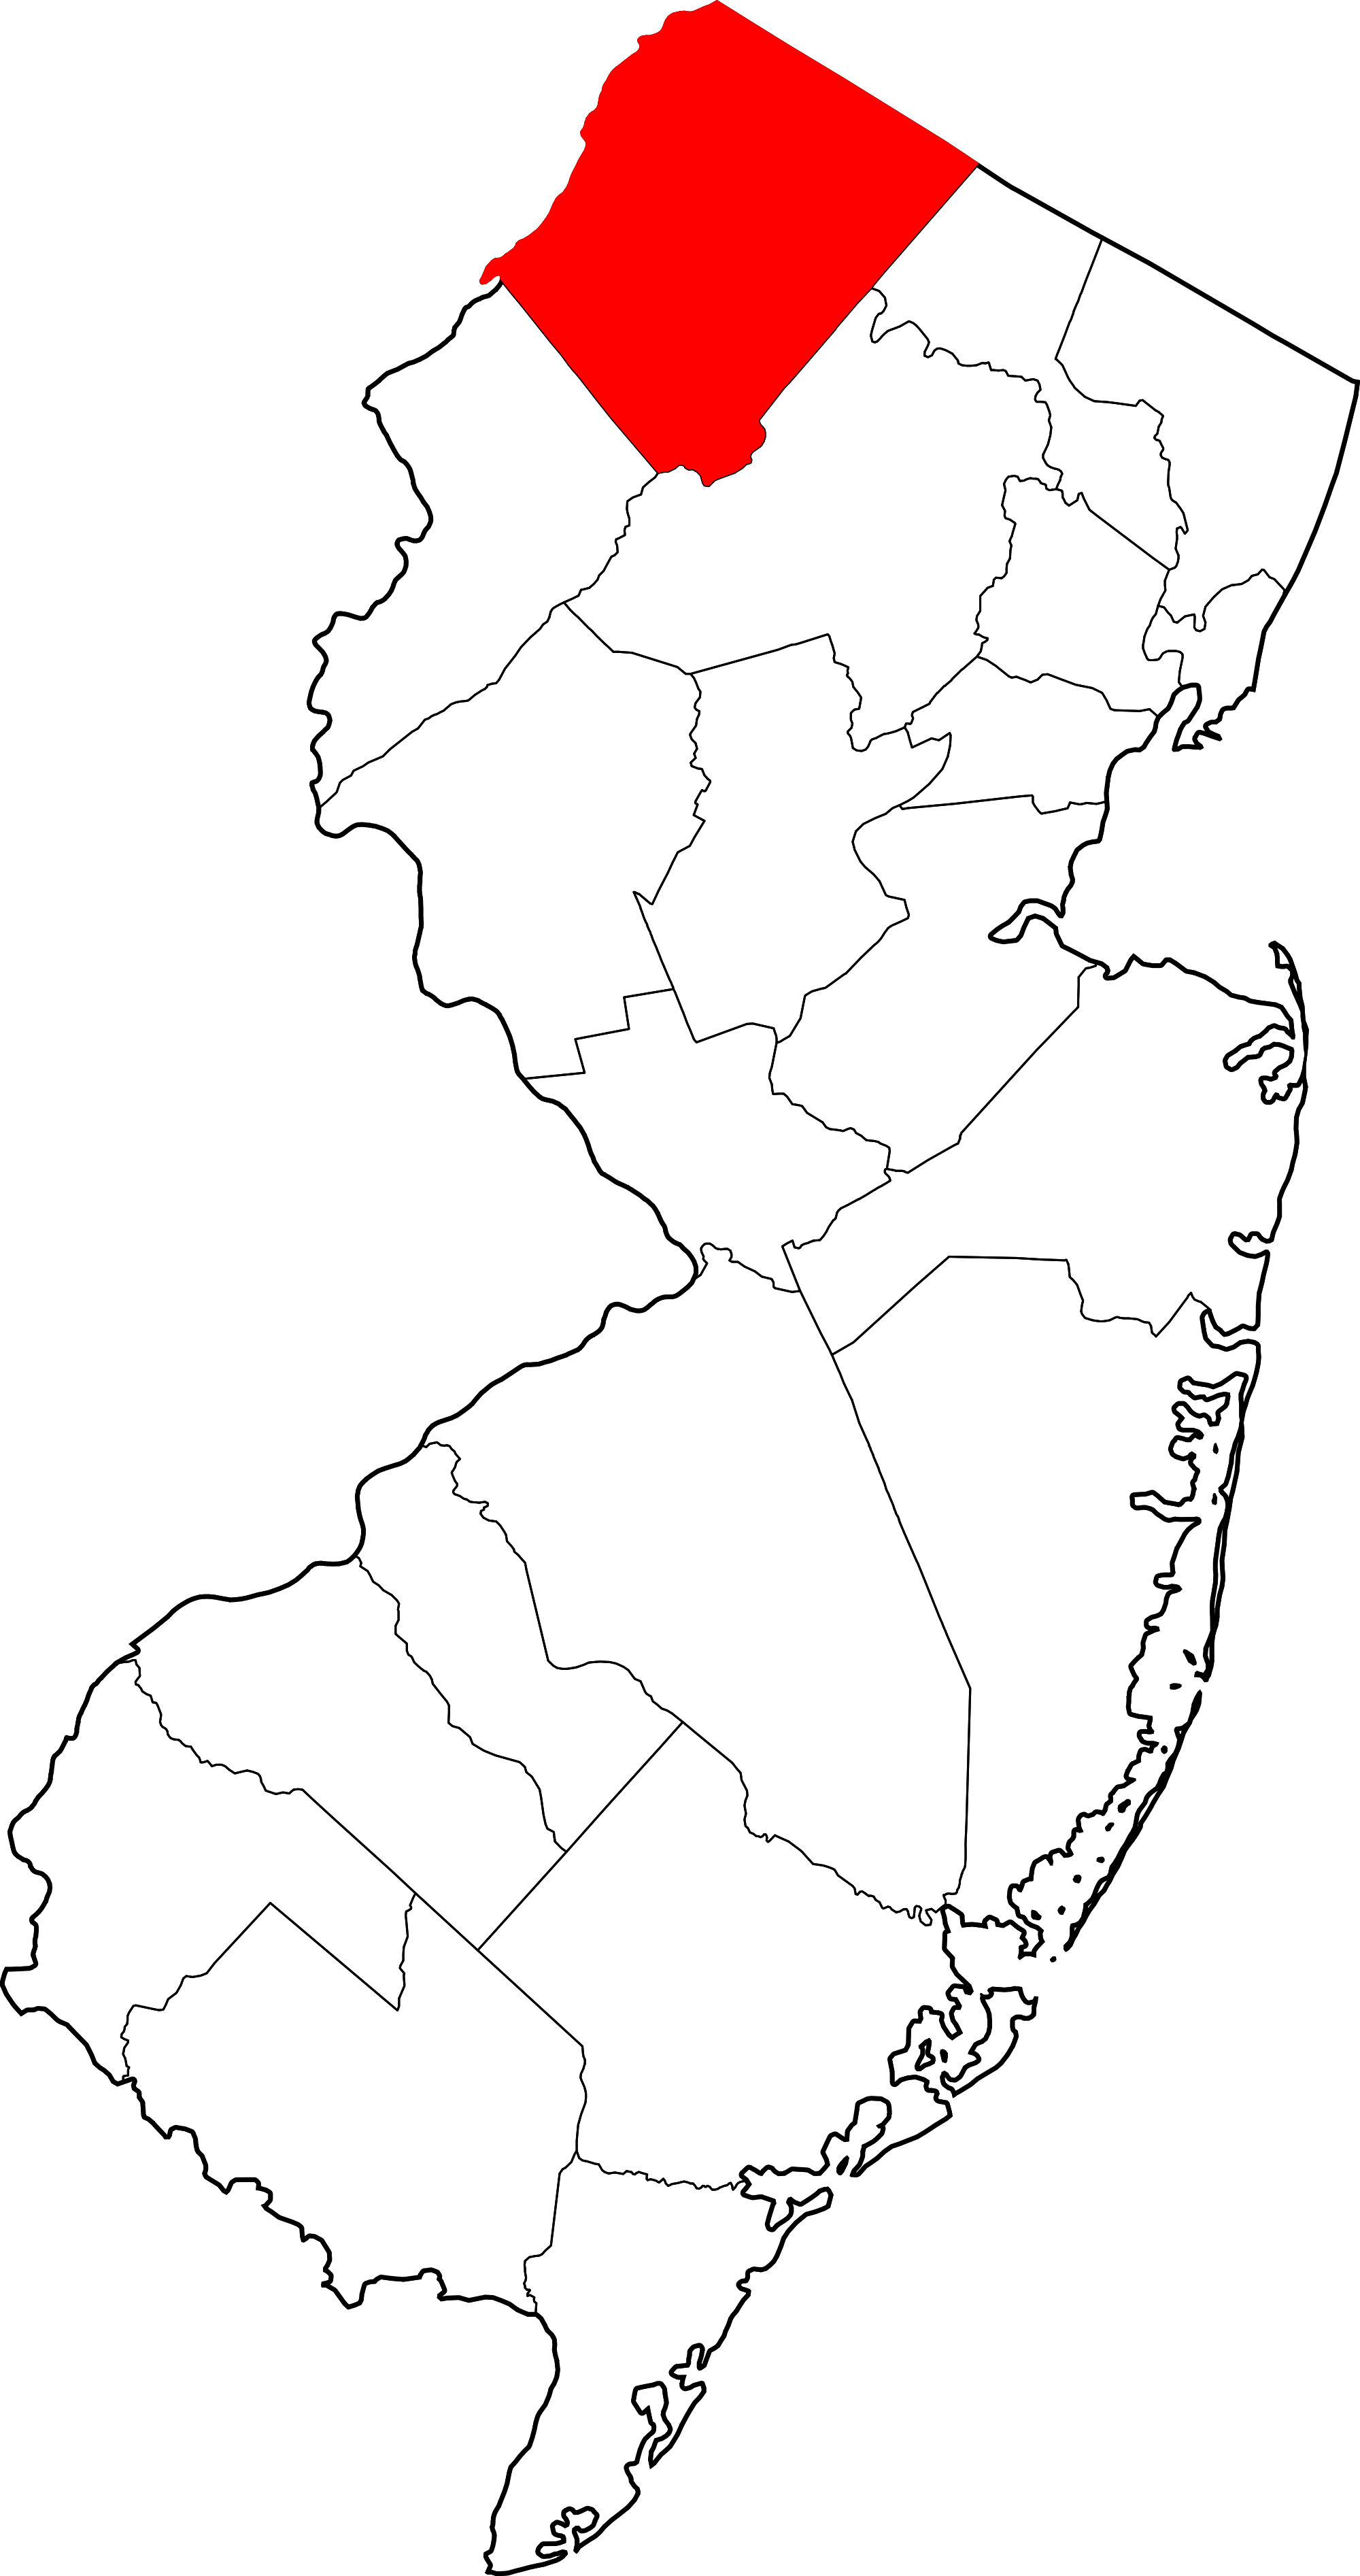 2000px-Map_of_New_Jersey_highlighting_Sussex_County